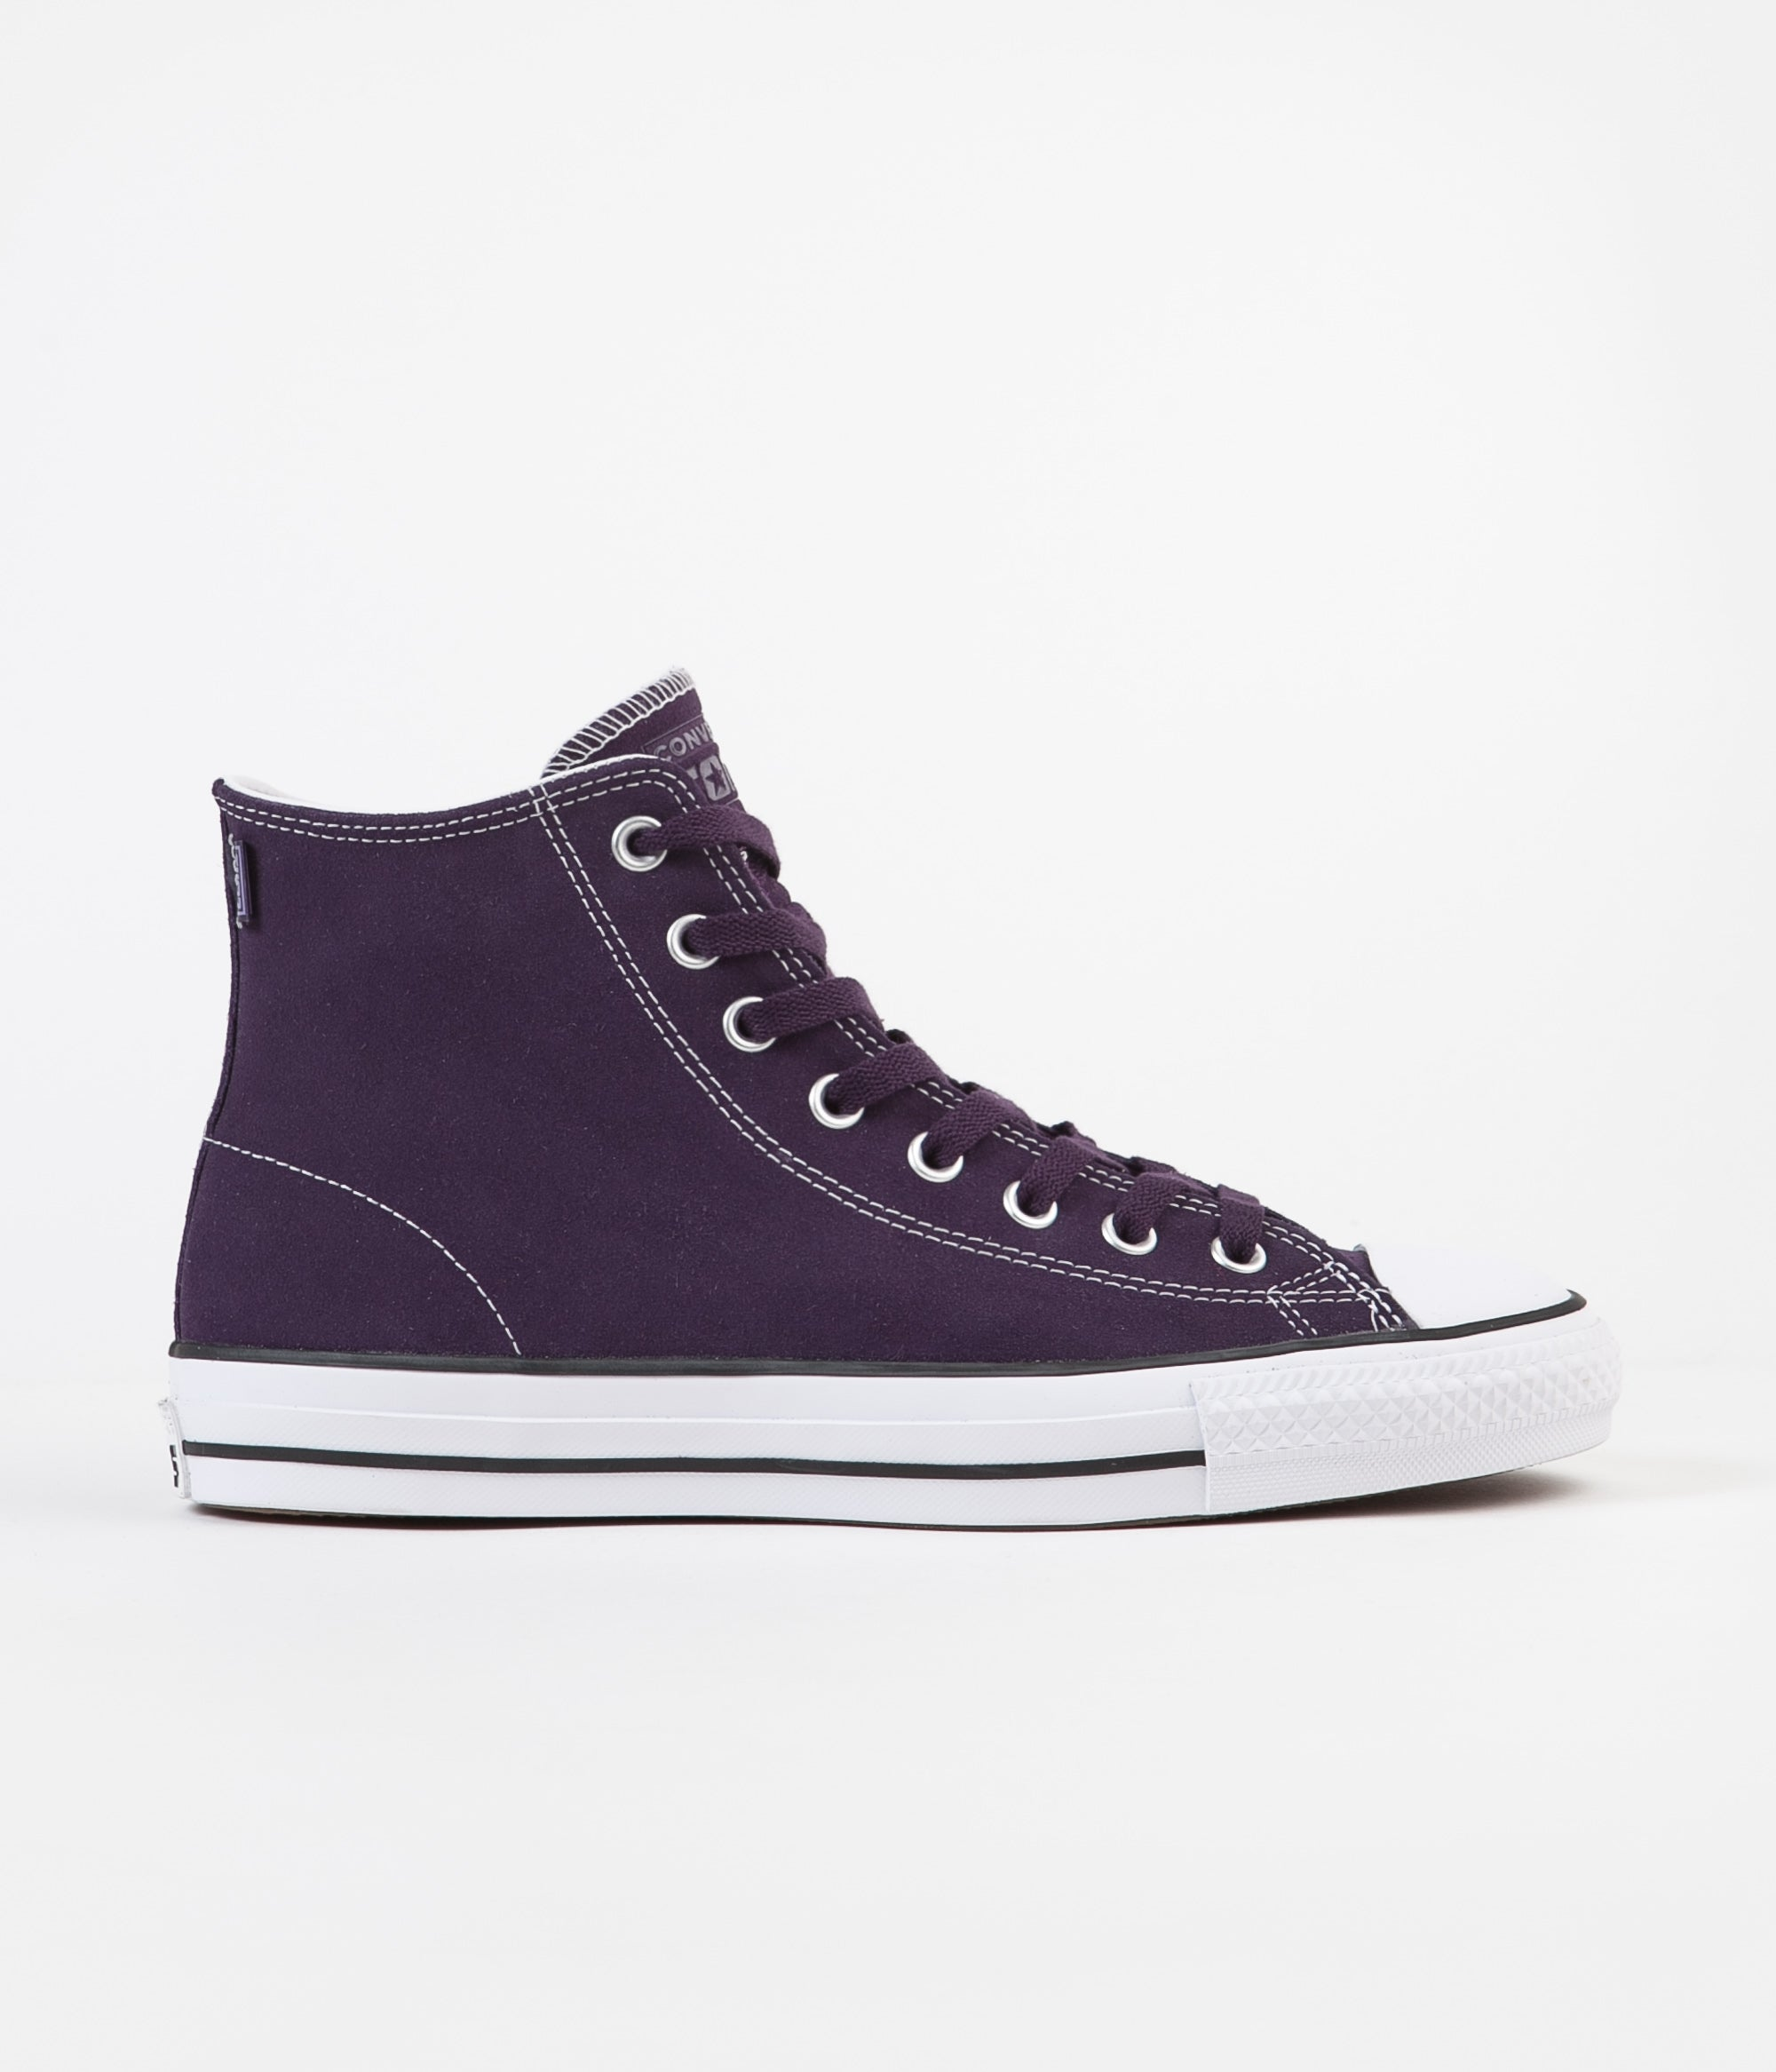 Converse CTAS Pro Hi Suede Shoes - Grand Purple / Vivid Sulfur / White